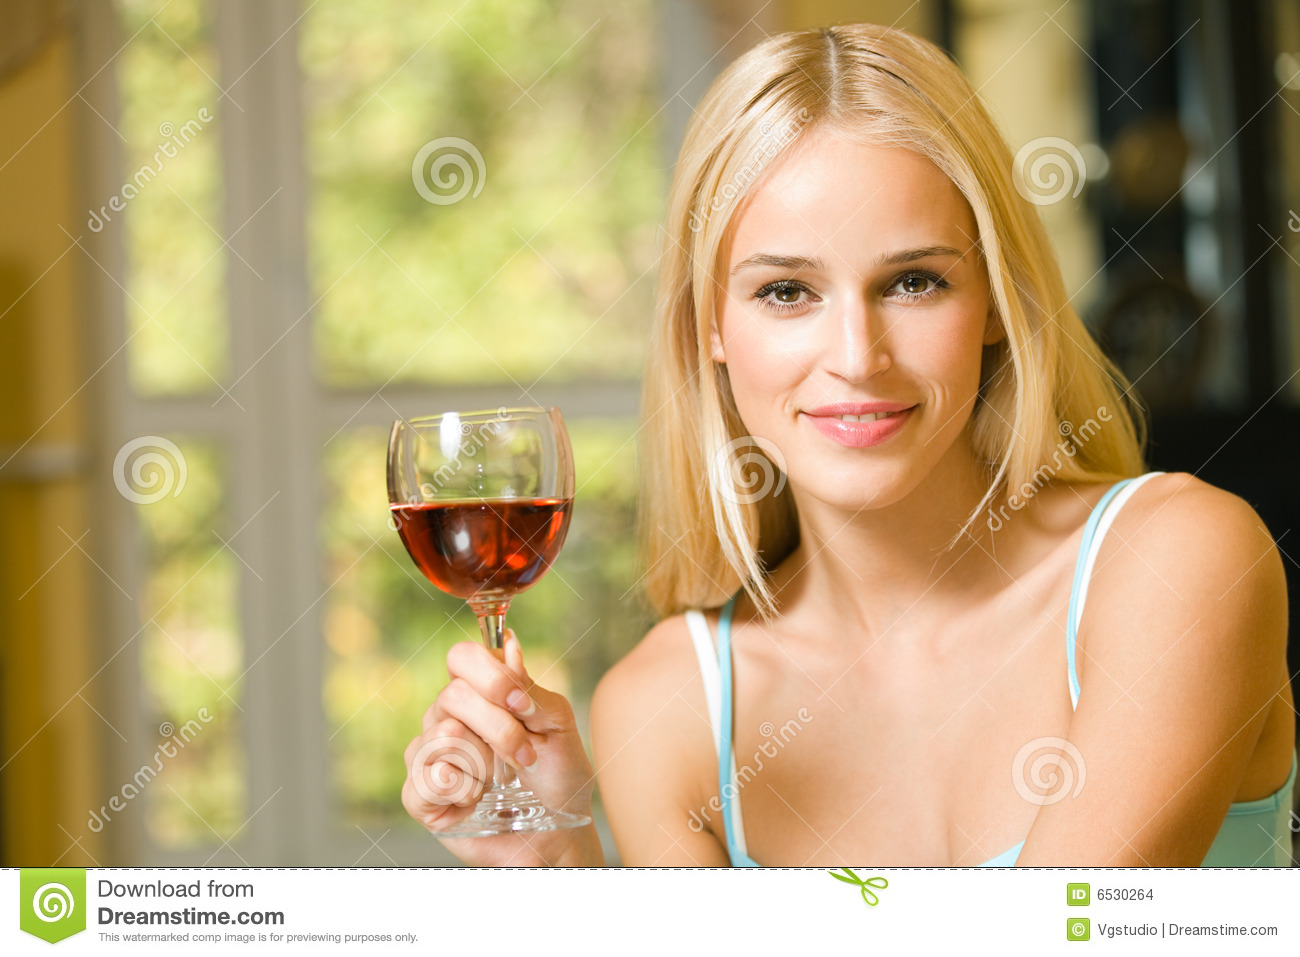 Woman With Red-wine Glass Stock Images - Image: 6530264